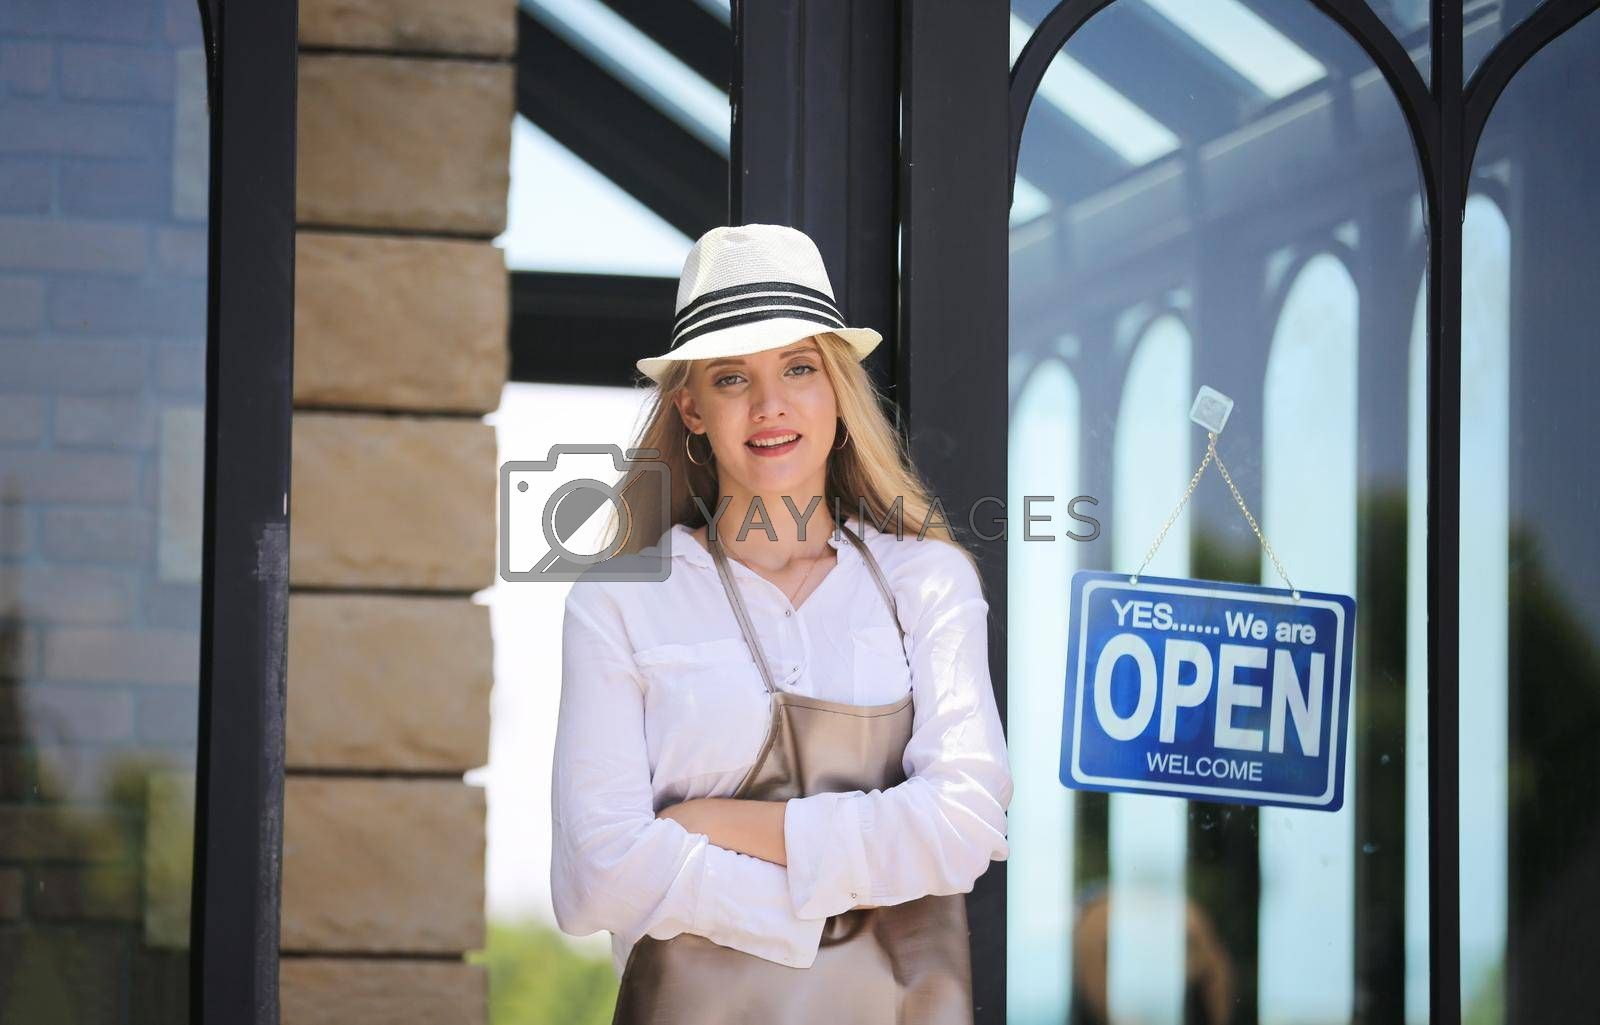 Beautiful blonde hair girl standing by open shop sign plate at door with confidence in front of coffee shop.